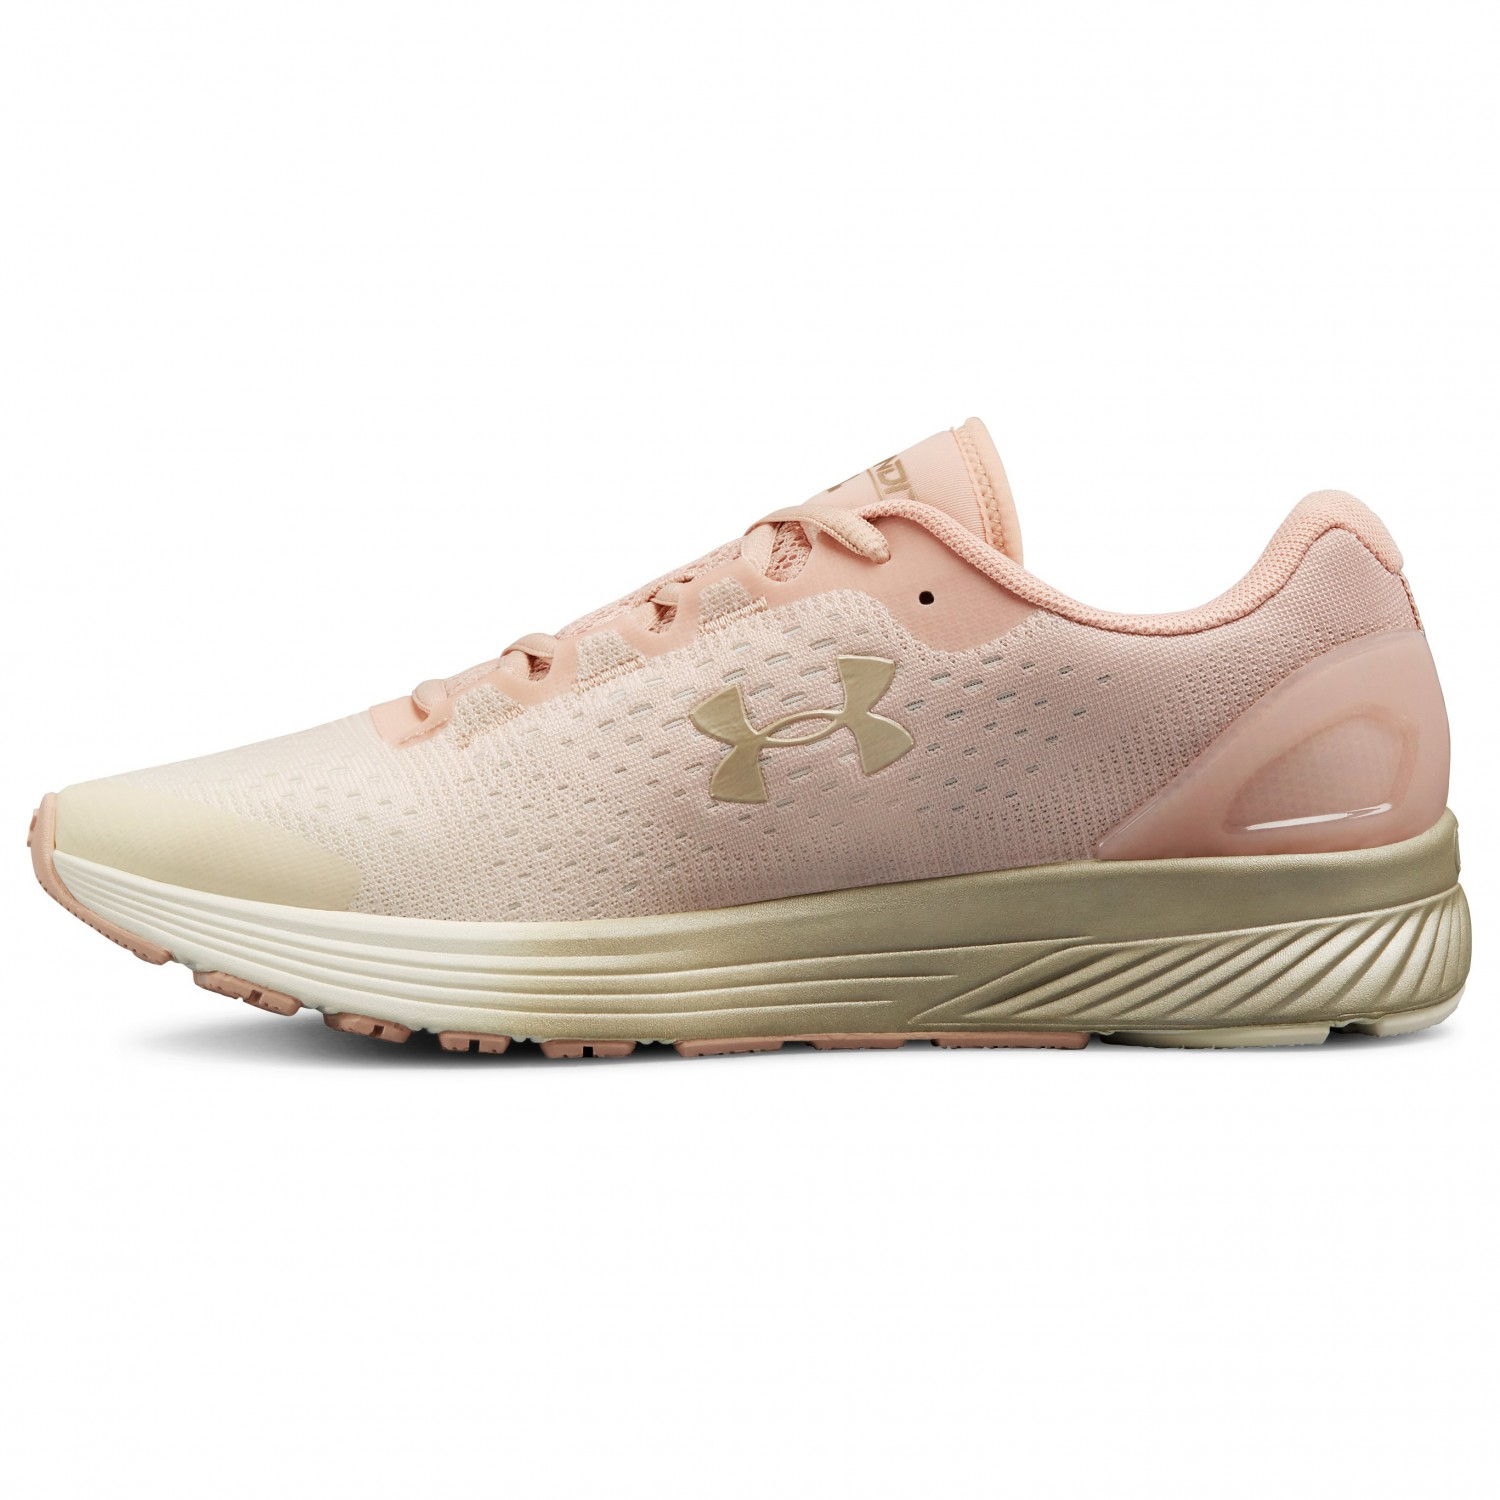 new product 0cb31 d4314 Under Armour UA Charged Bandit 4 - Running Shoes Women's ...